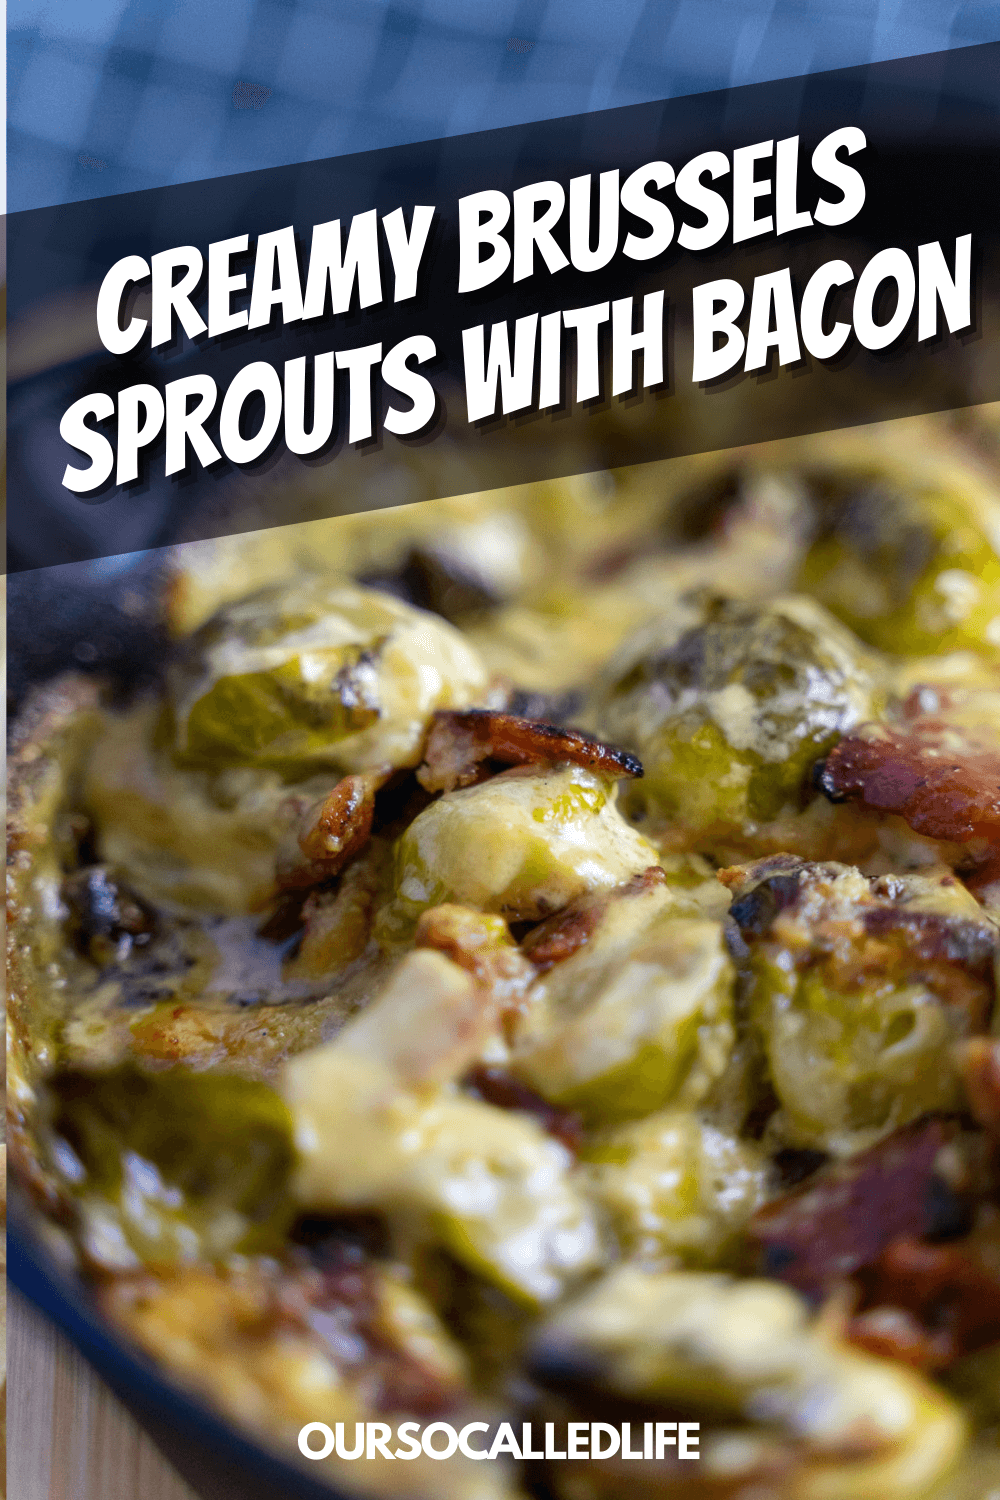 Creamy Brussels Sprouts with Bacon Recipe